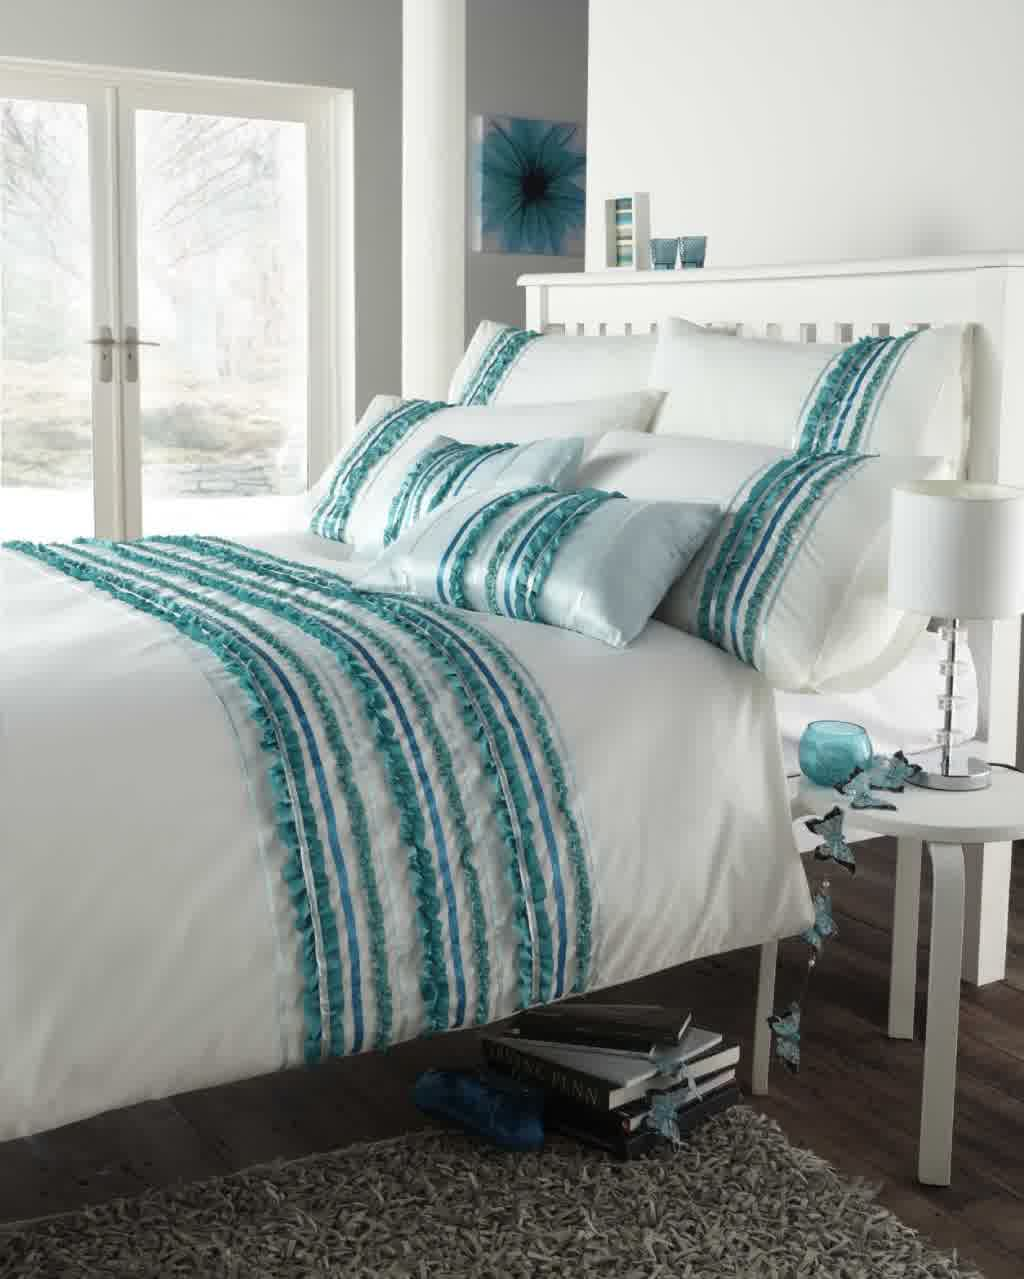 bore turquoise and white bedding set product selectionshomesfeed